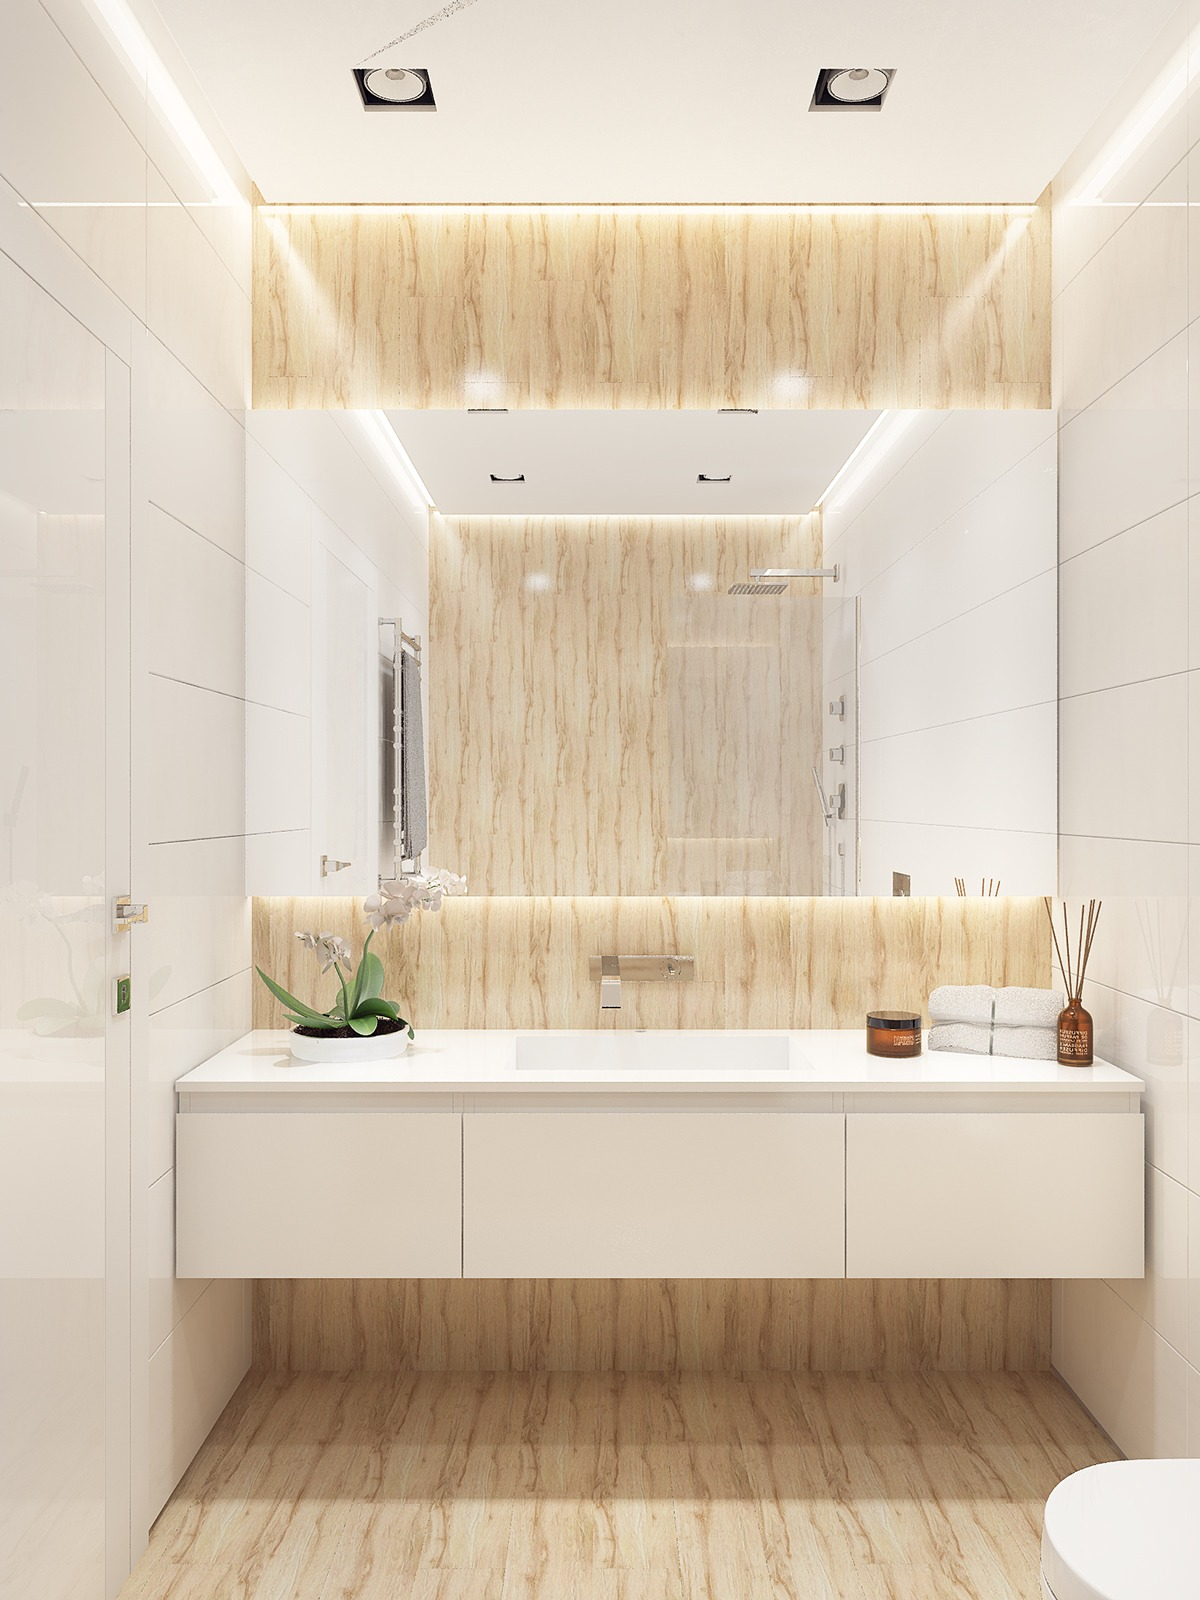 Simple bathroom interior design - Similarly Simple Designs With A Bright And Cheerful Tone